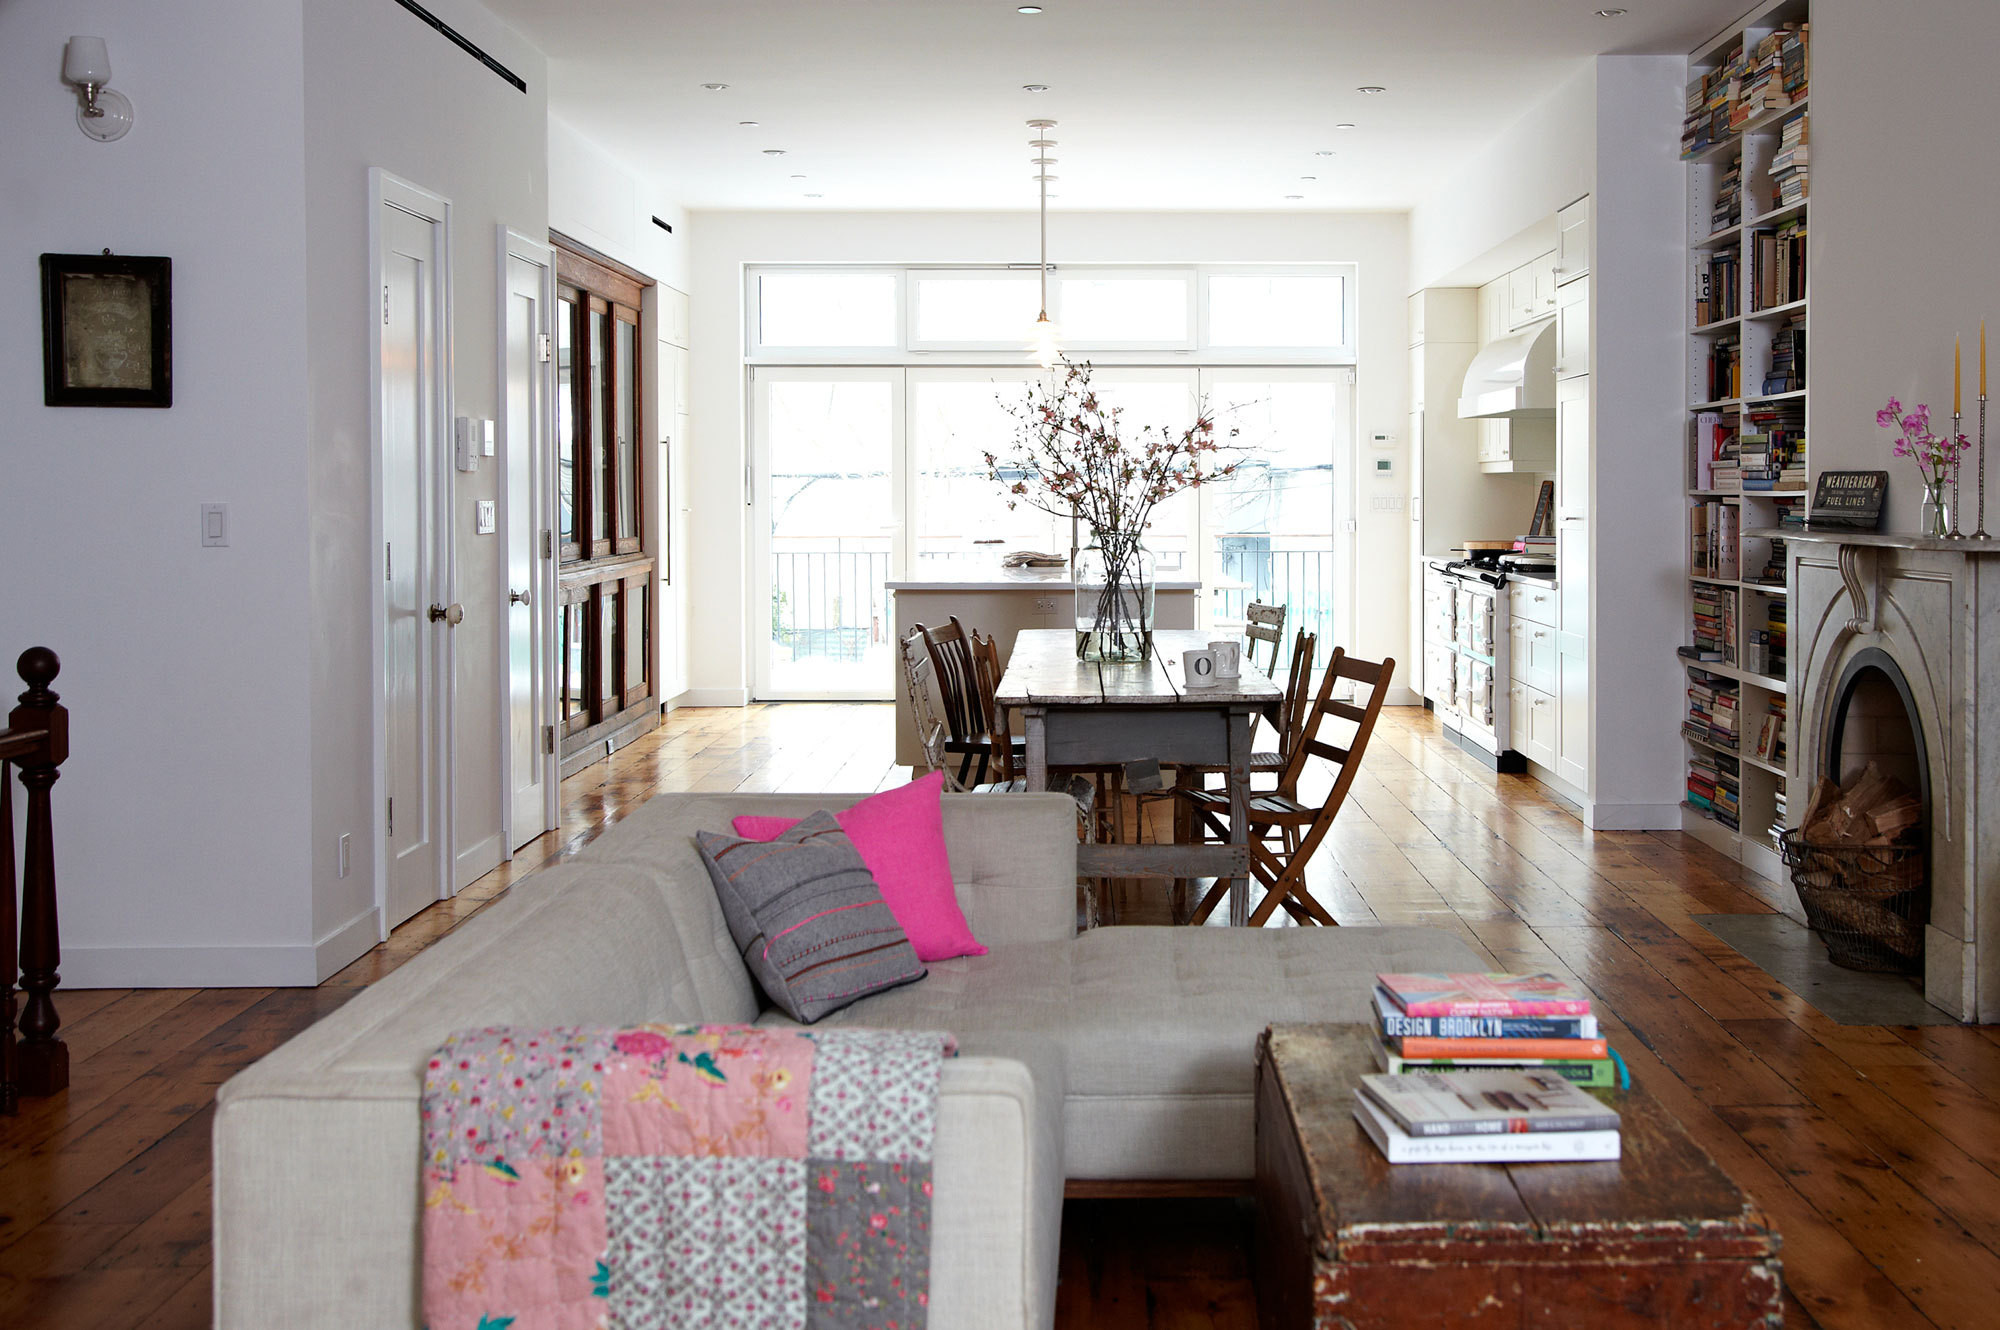 The open-plan parlor level of Odette Williams and Nick Law's residence encompasses living and dining spaces and a luminous kitchen.